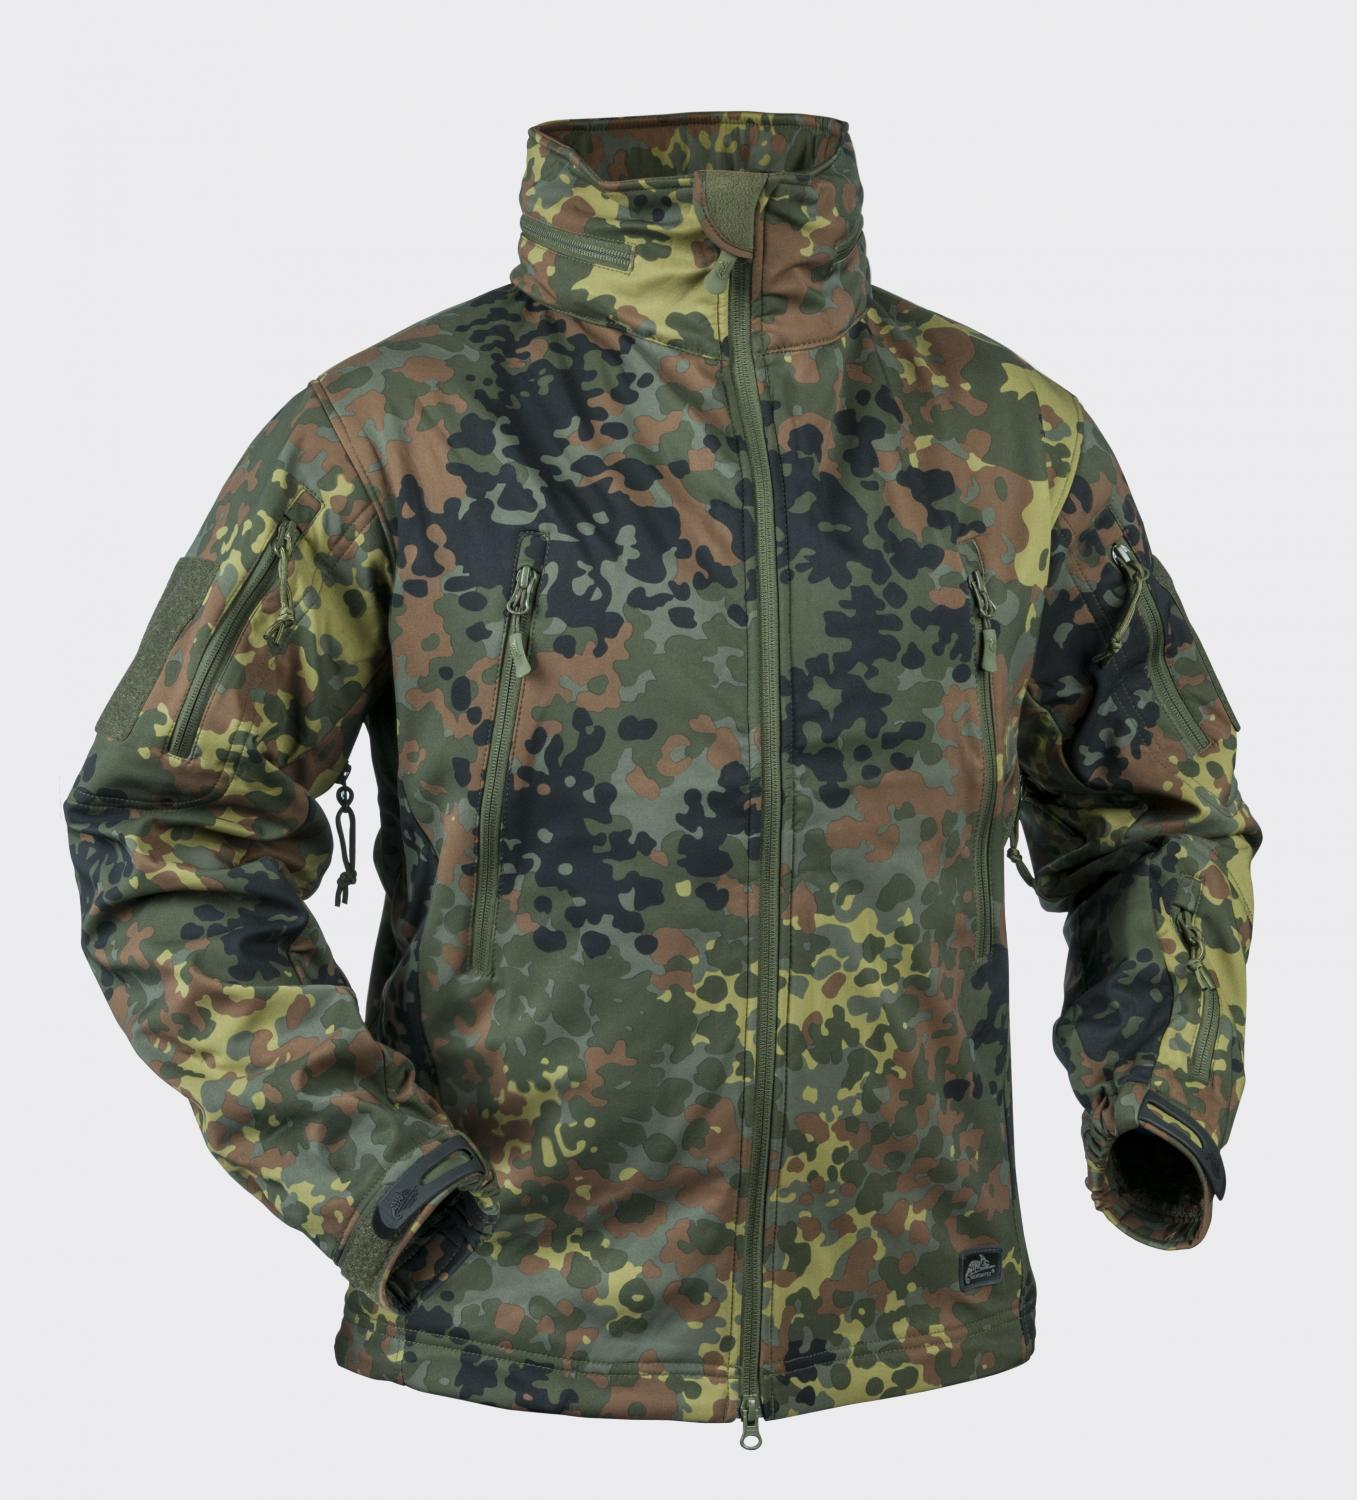 GUNFIGHTER - Shark Skin Windblocker Flecktarn